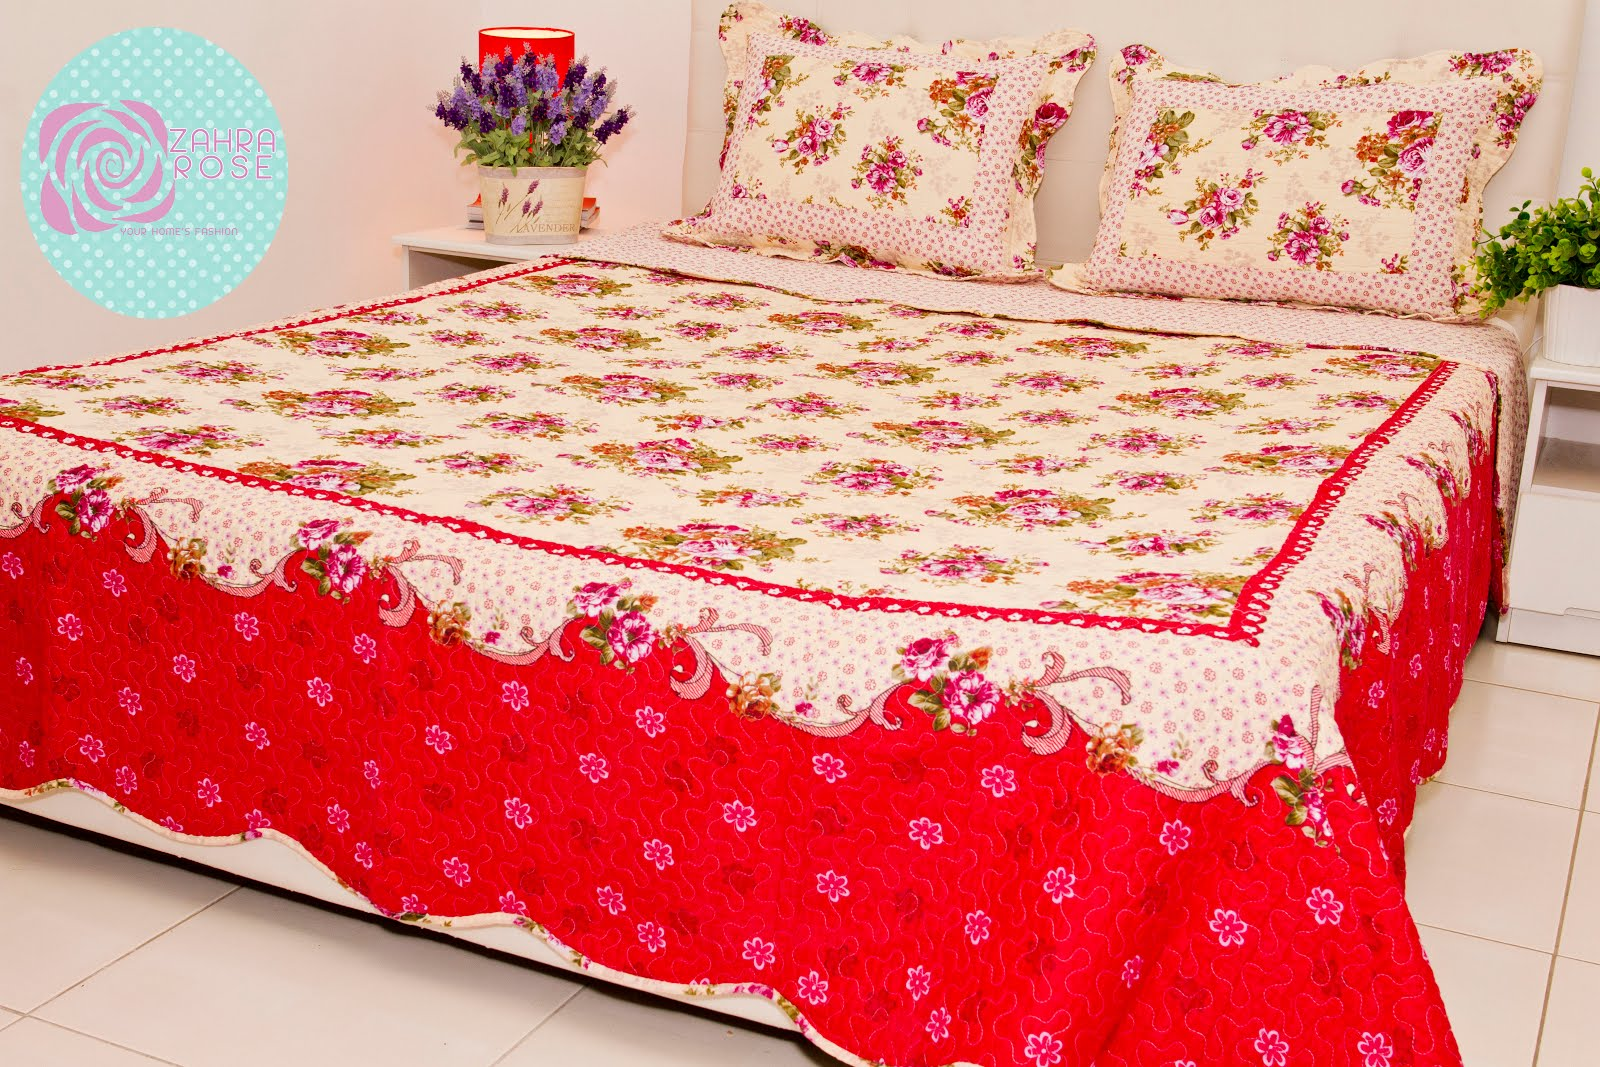 Bed sheet design patchwork - Zahra Rose Design Cotton Patchwork Bed Sheet